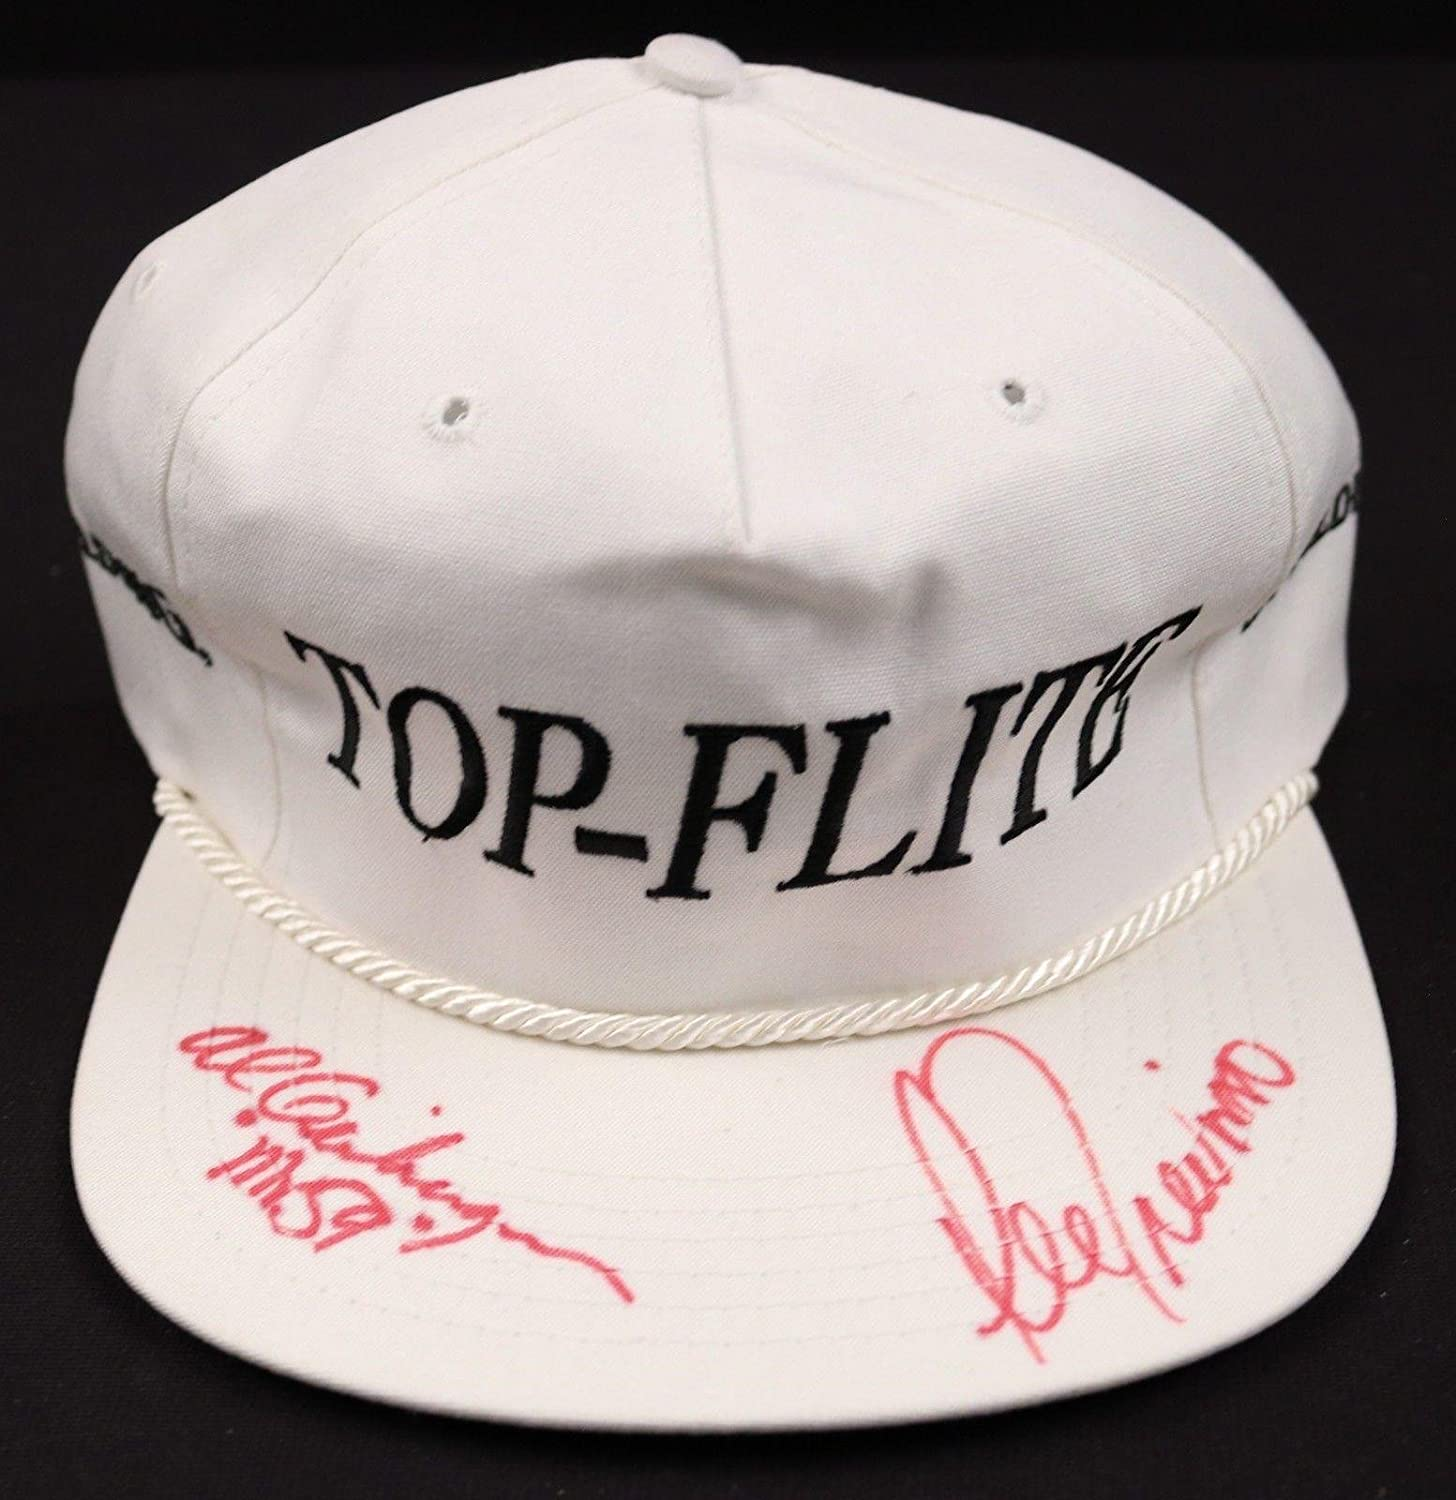 Lee Trevino Al Geiberger Signed Spalding Top-Flight Golf Hat - COA - JSA  Certified - Autographed Golf Hats and Visors at Amazon s Sports  Collectibles Store f9af3f45e4b